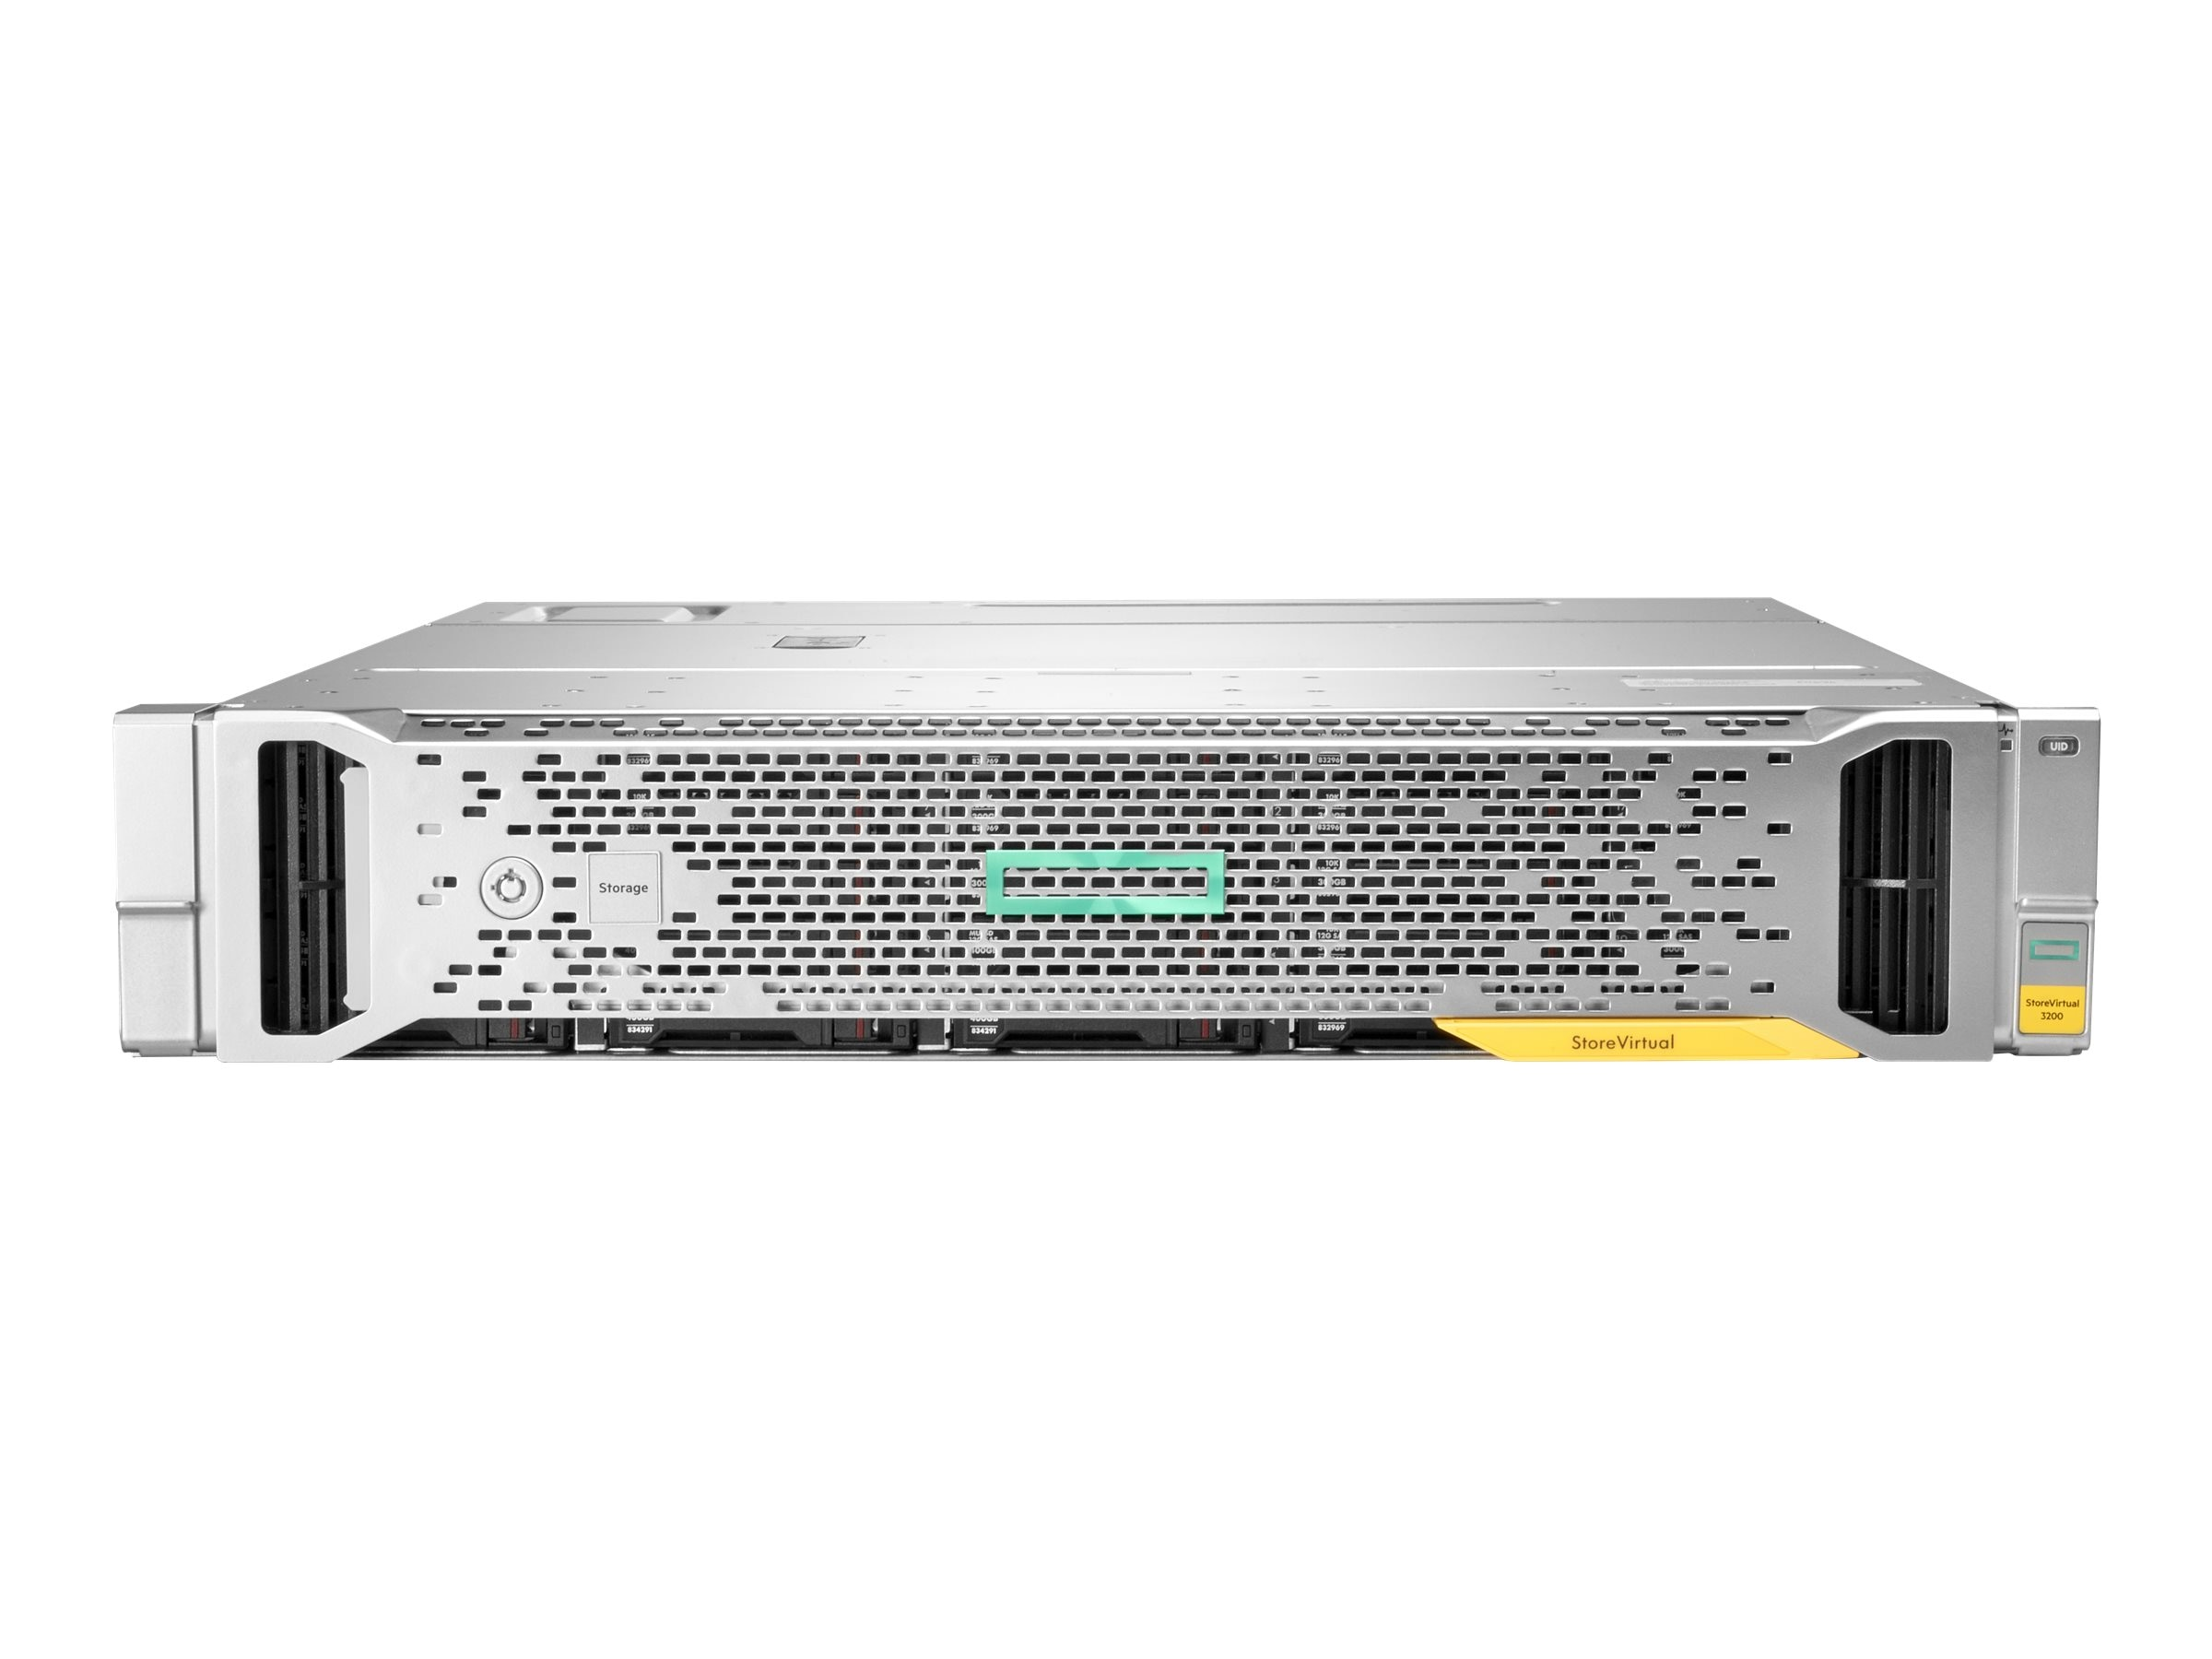 Hewlett Packard Enterprise N9X16A Image 2